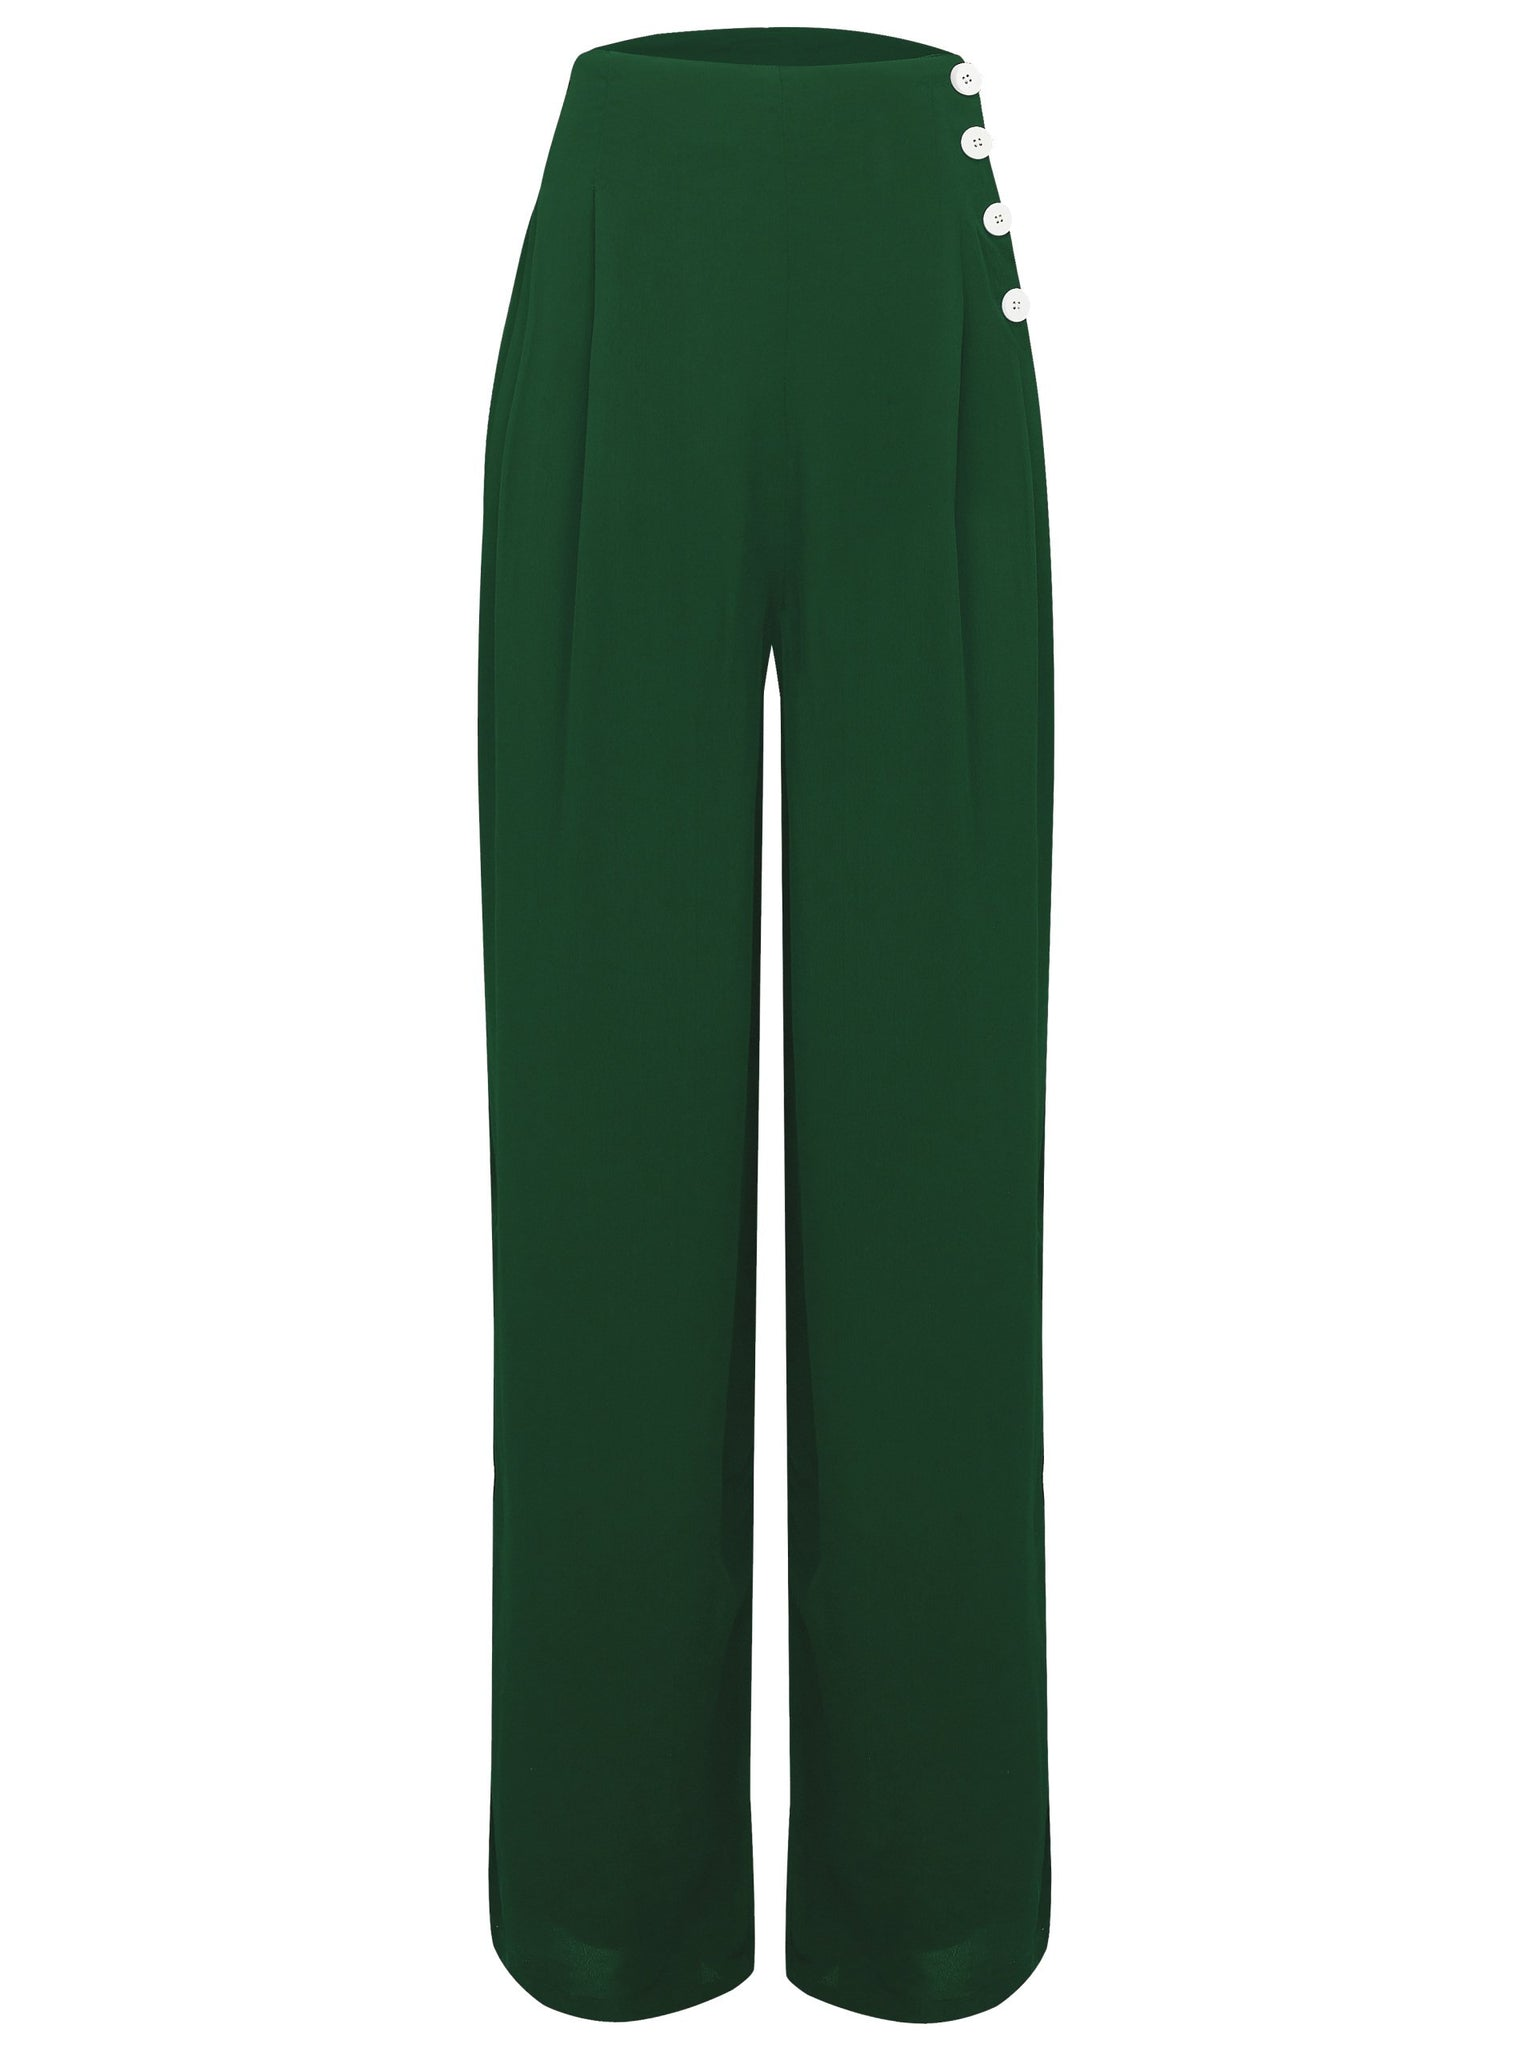 """Audrey"" Trousers in Vintage Green by The Seamstress of Bloomsbury, Classic 1940s Vintage Style"